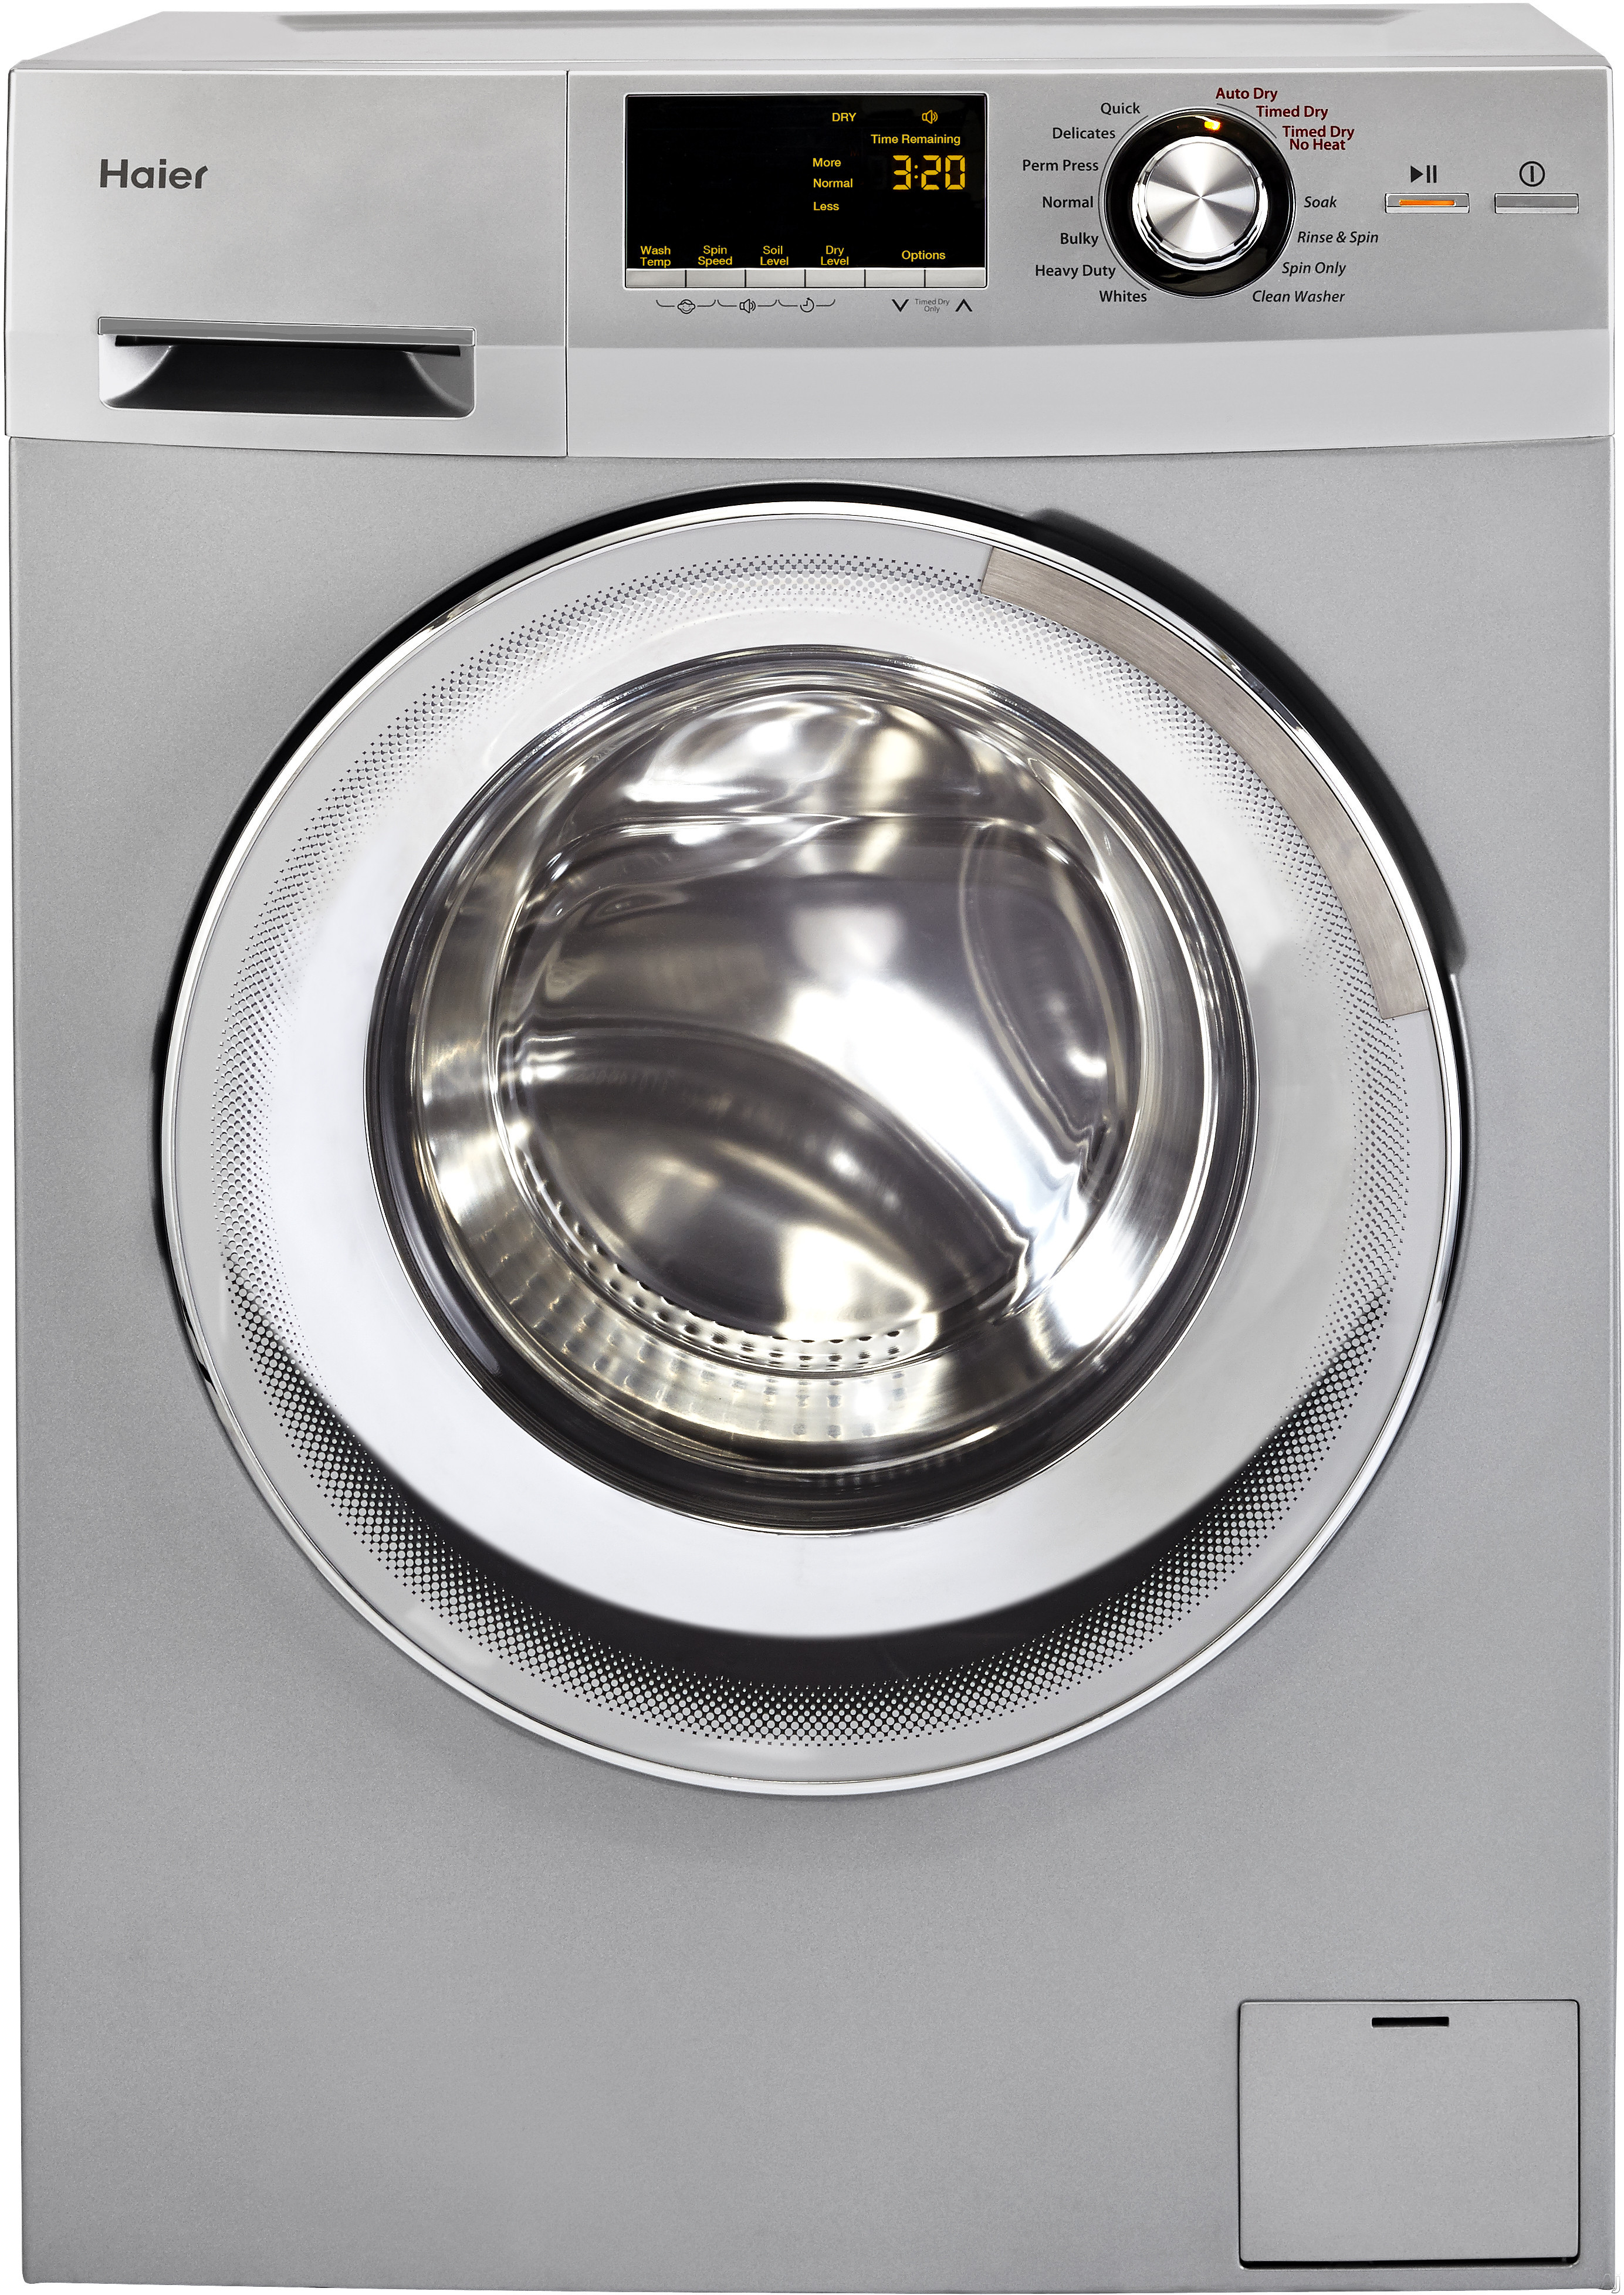 Haier HLC1700AXP 24 Inch Washer/Dryer Combo with 2.0 cu. ft. Capacity, Non-Vented Condensing Drying, 11 Wash Cycles, 3 Dry Cycles, 3 Dispensers (Detergent, Fabric Softener, Bleach) and 24-Hour Delay Start